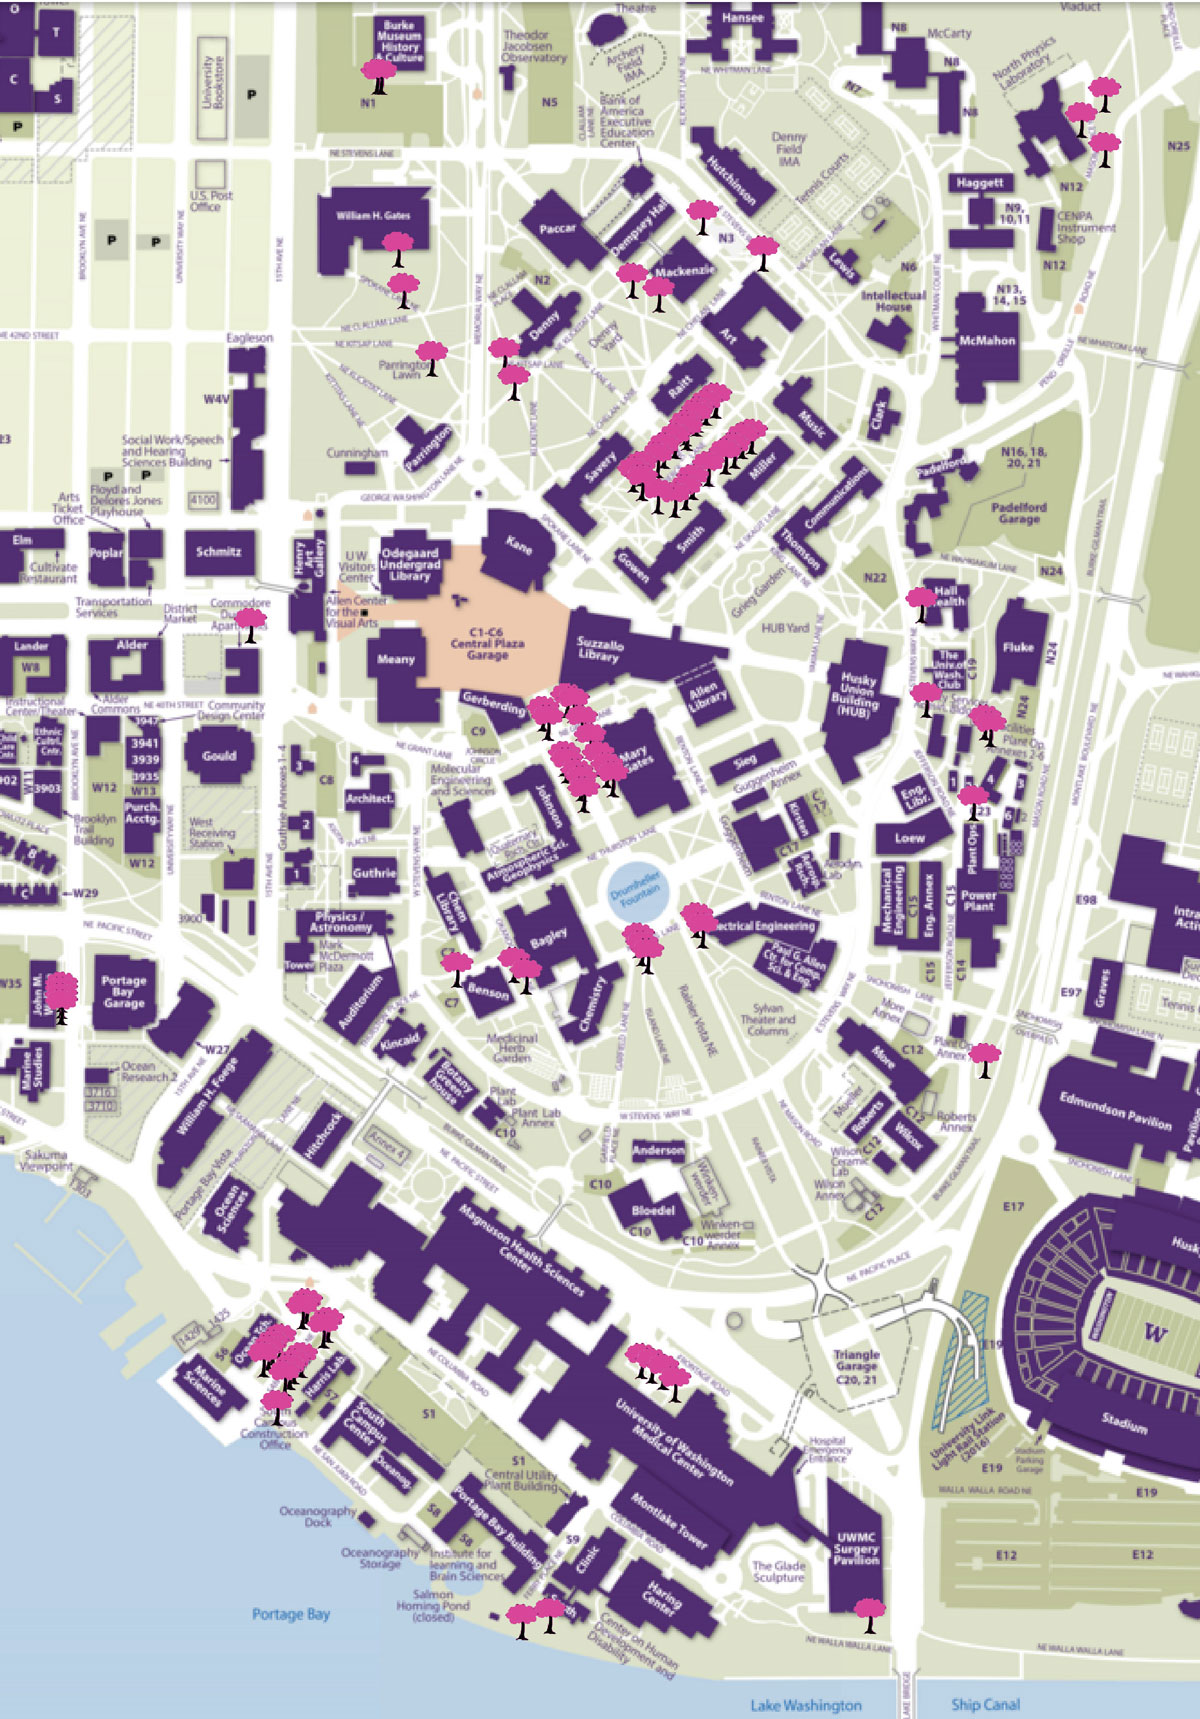 Uw Seattle Campus Map : seattle, campus, Round, Cherry, Blossom, Season, Underway